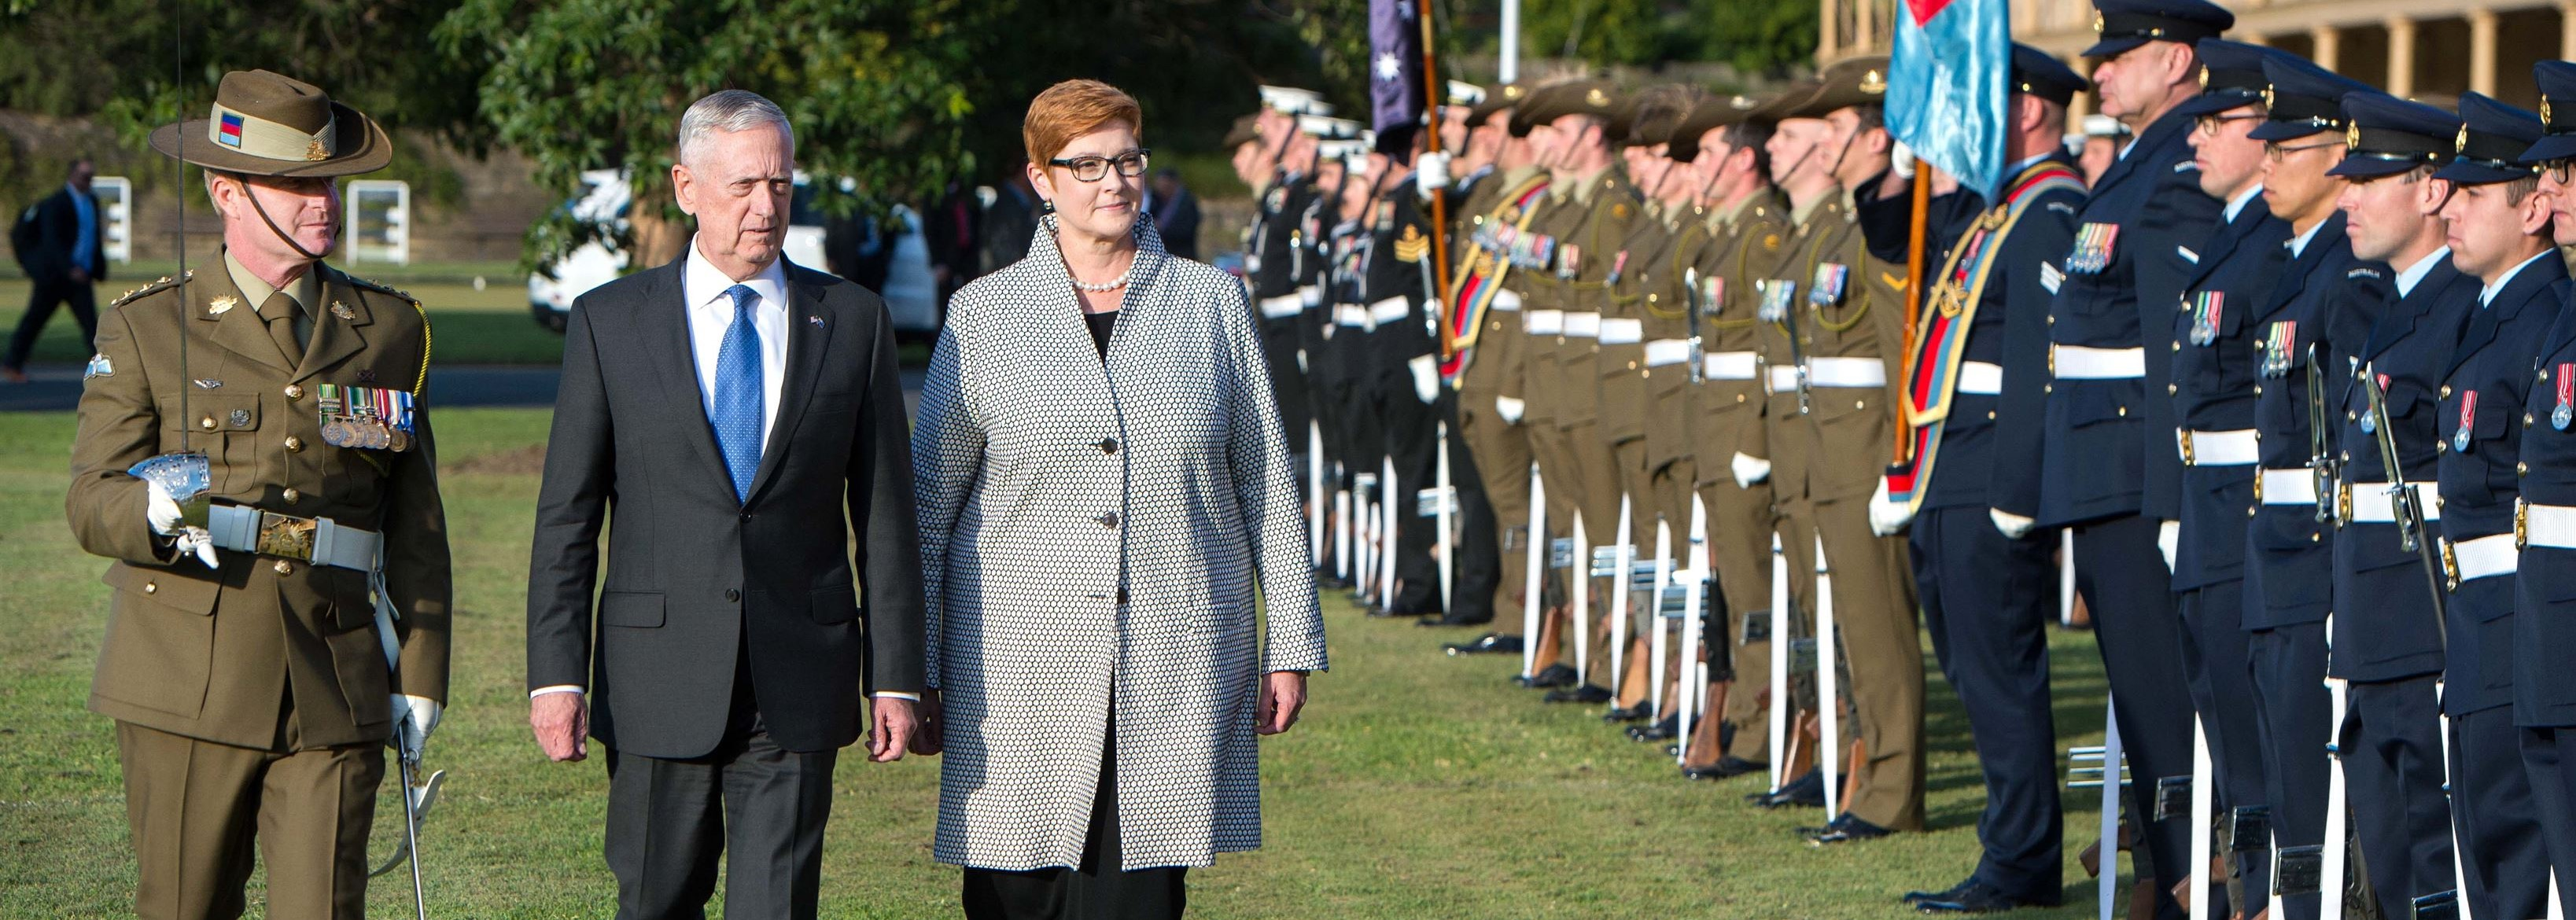 The American and Australian Defence Minsters review the troops at Victoria Barracks in Sydney on Monday (Photo: US DoD)